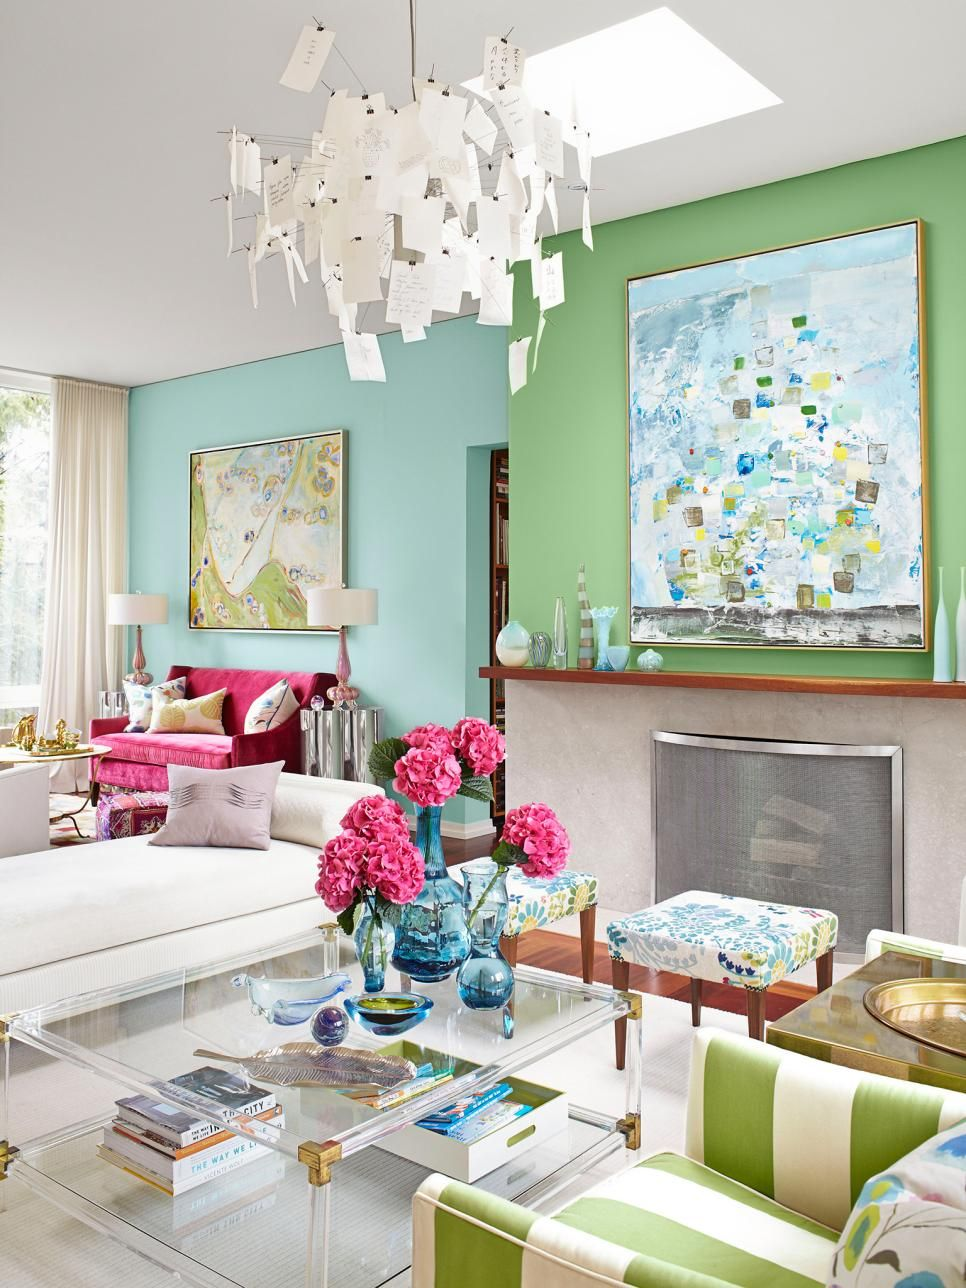 These 2 Shades Of Blue And Green Go Very Well Together The Paintings On Each Wall Play Off Other Perfectly Pink Pop Color